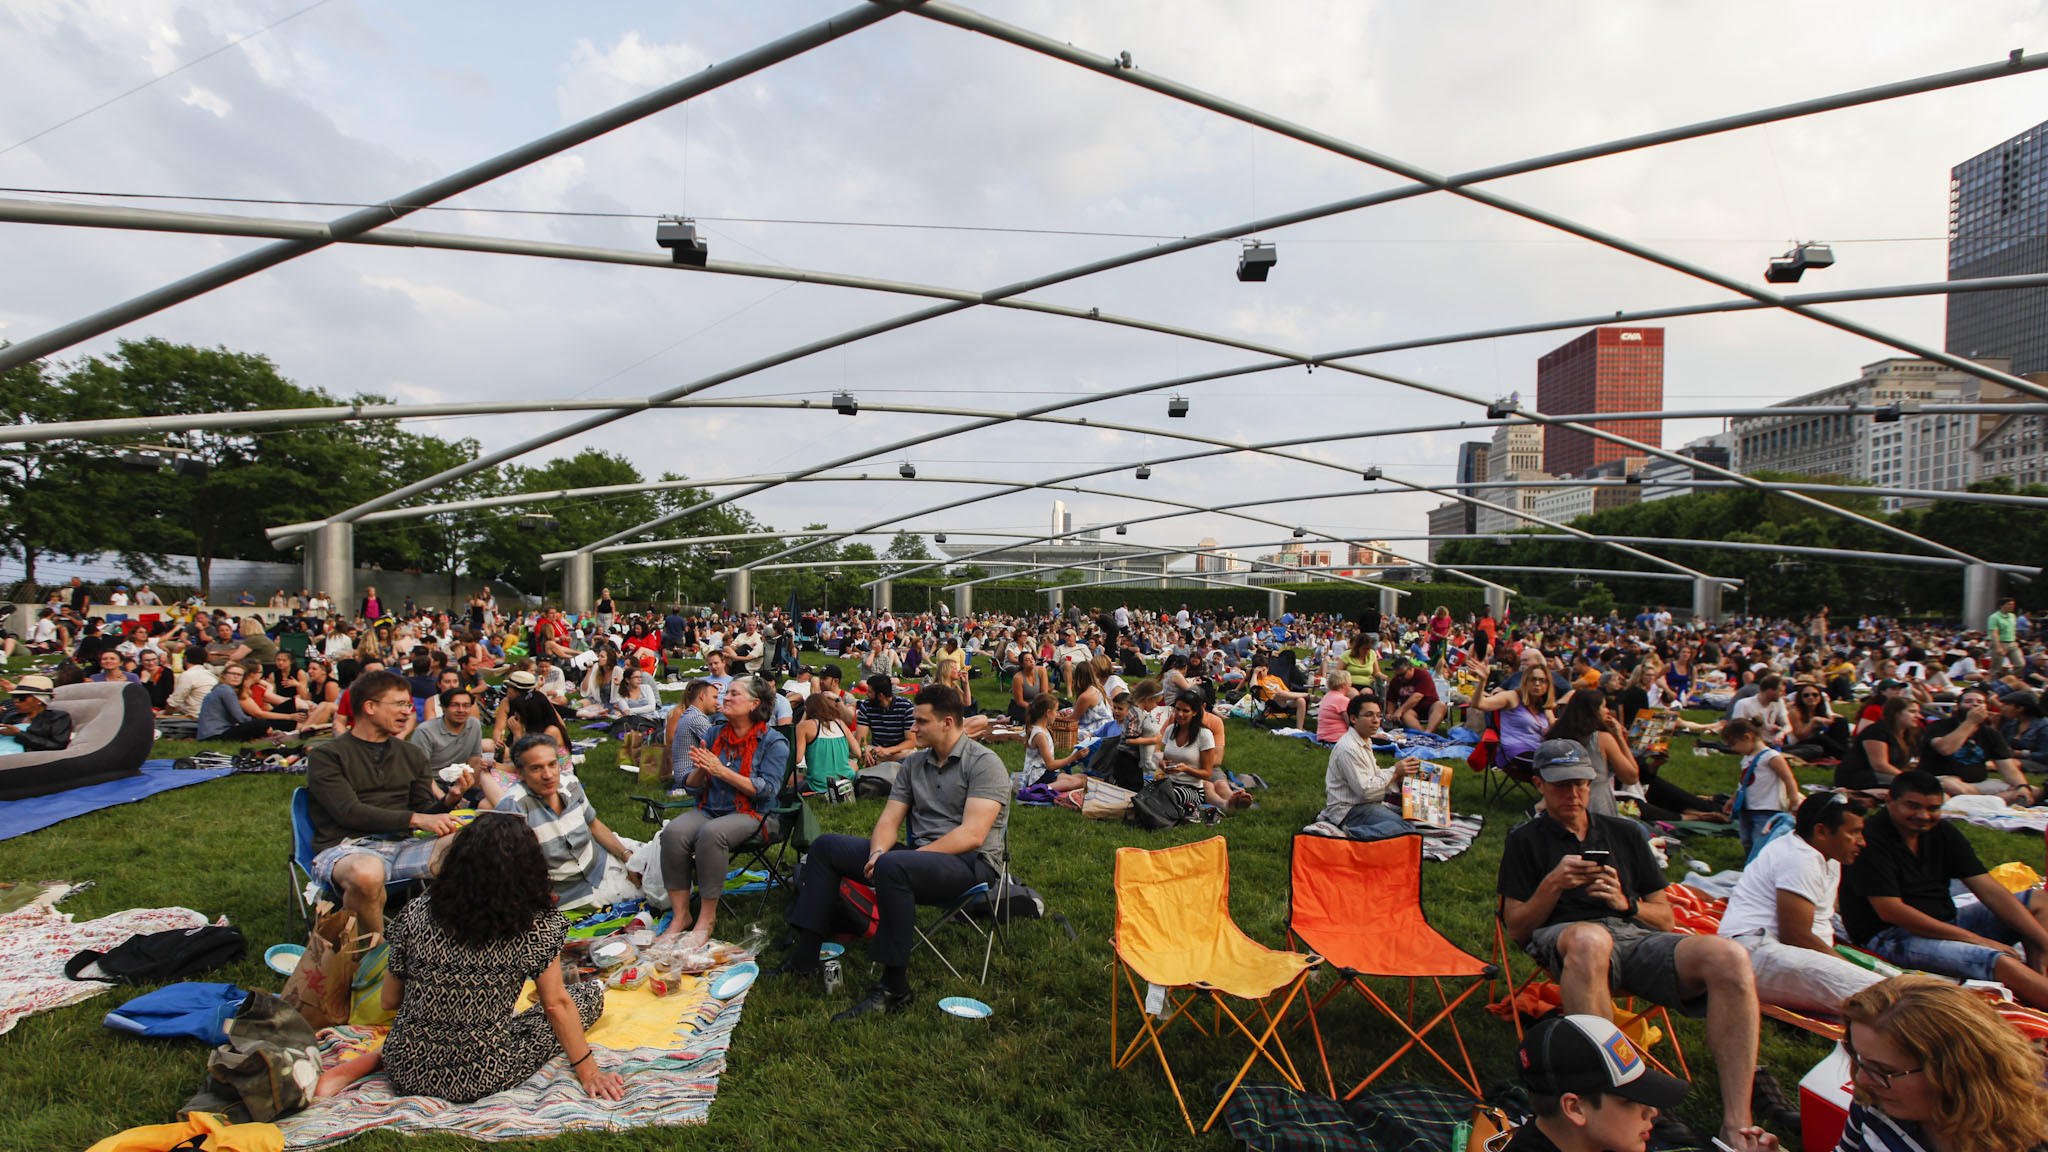 You won't be able to bring your own alcohol to seven Millennium Park events this summer